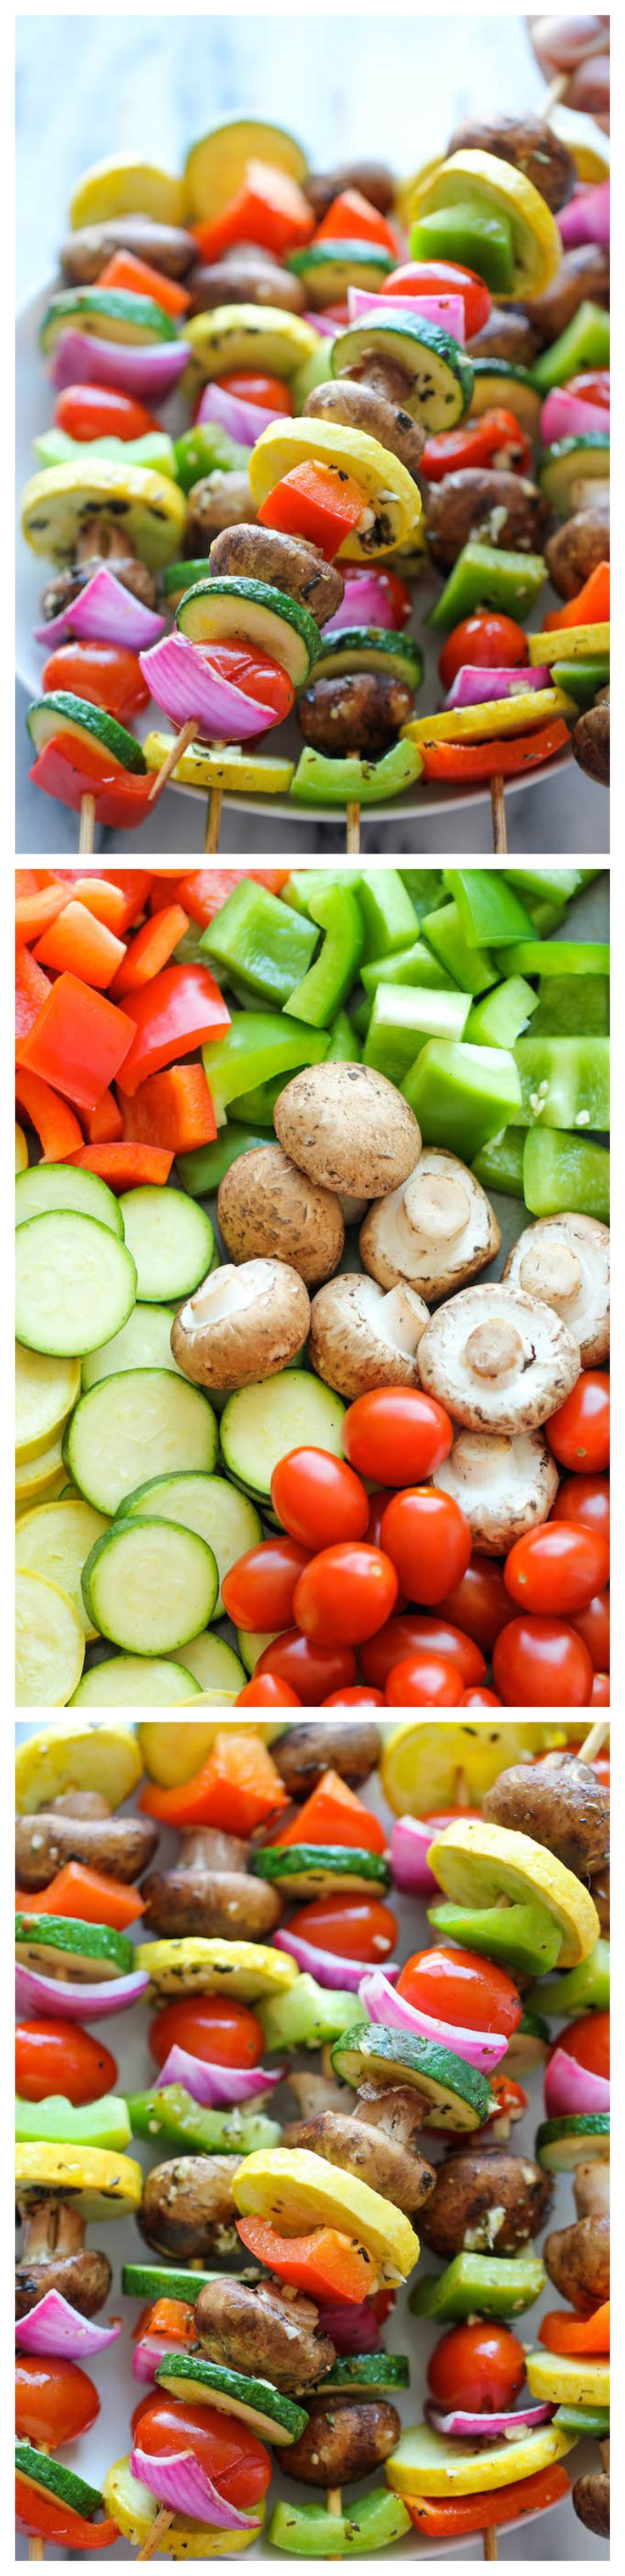 Vegetable Kabobs - These marinated fresh veggie kabobs are packed with tons of flavor - perfect as a healthy side dish to any meal!